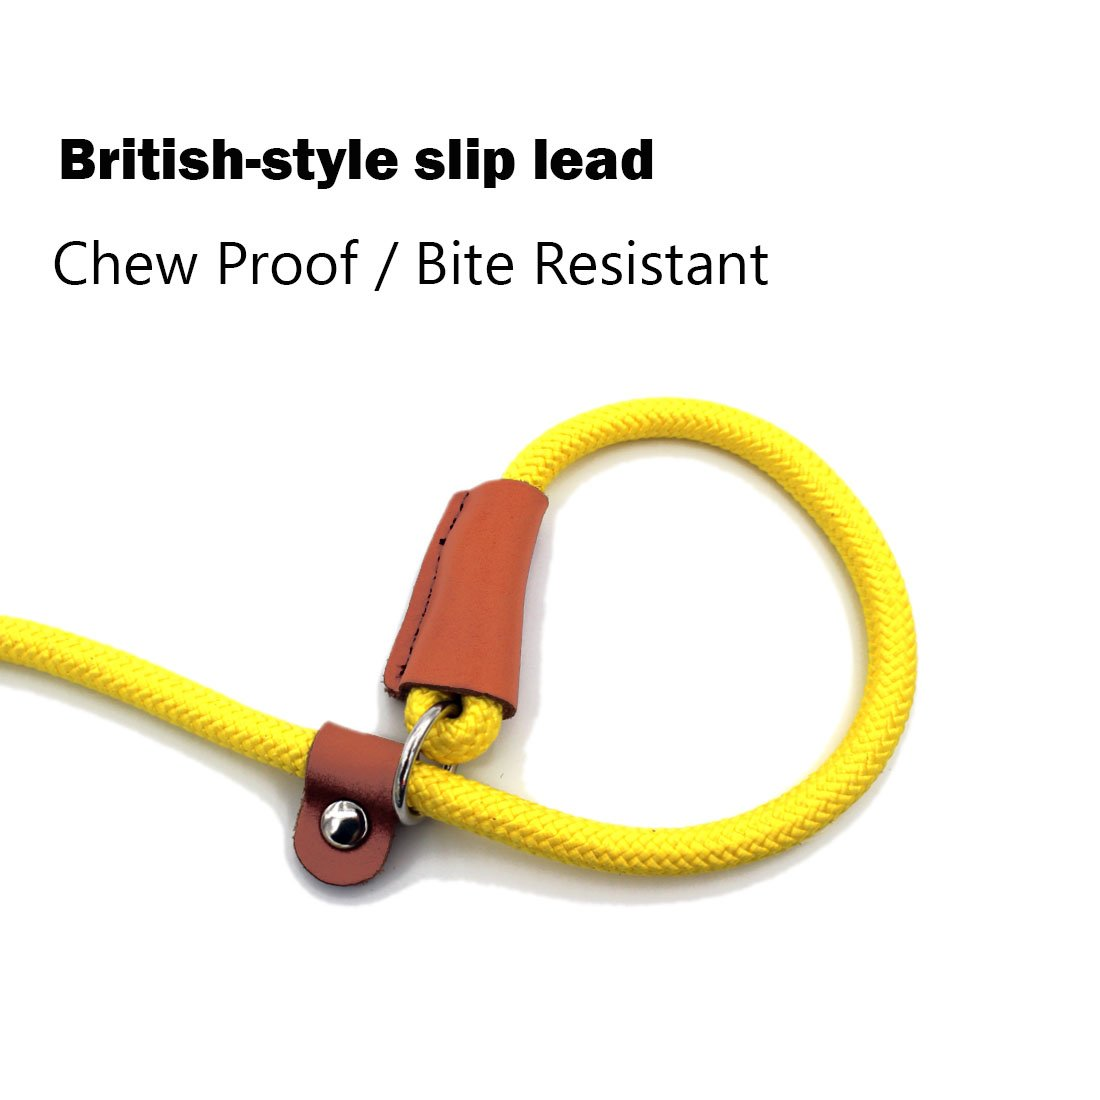 lynxking Braided Rope Dog Leash Strong Heavy Duty Bite Resistant Dog Rope Slip Leads UHMWPE Chew Resistant Training Lead Leashes Medium Large Dogs (3/8'' x5', Yellow) by lynxking (Image #5)